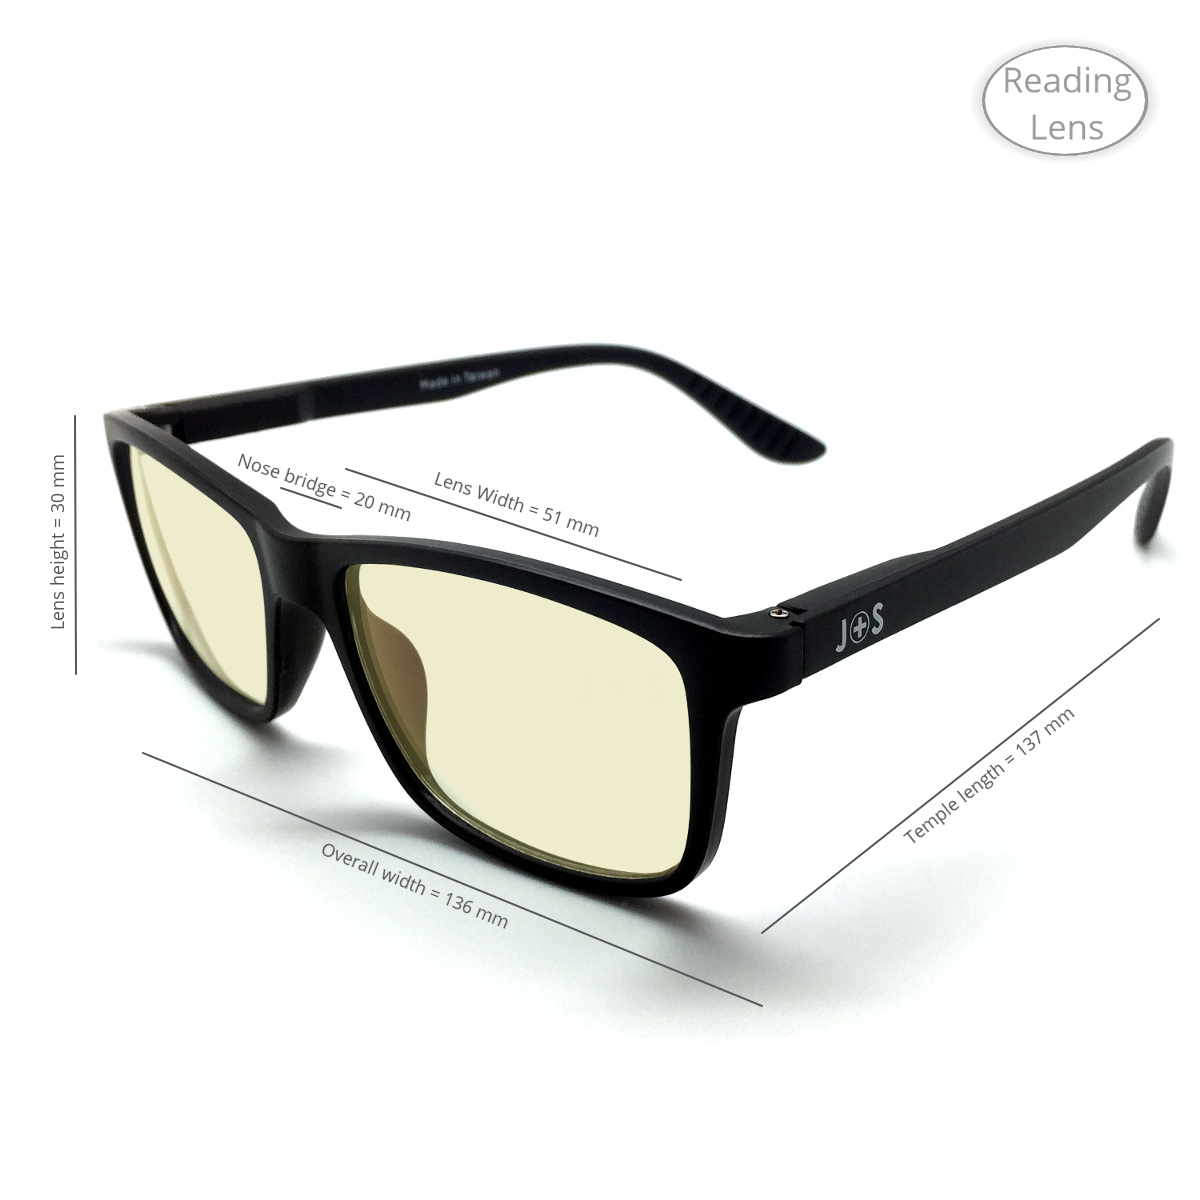 J+S Vision Blue Light Shield Computer/iPad Reading Glasses ...